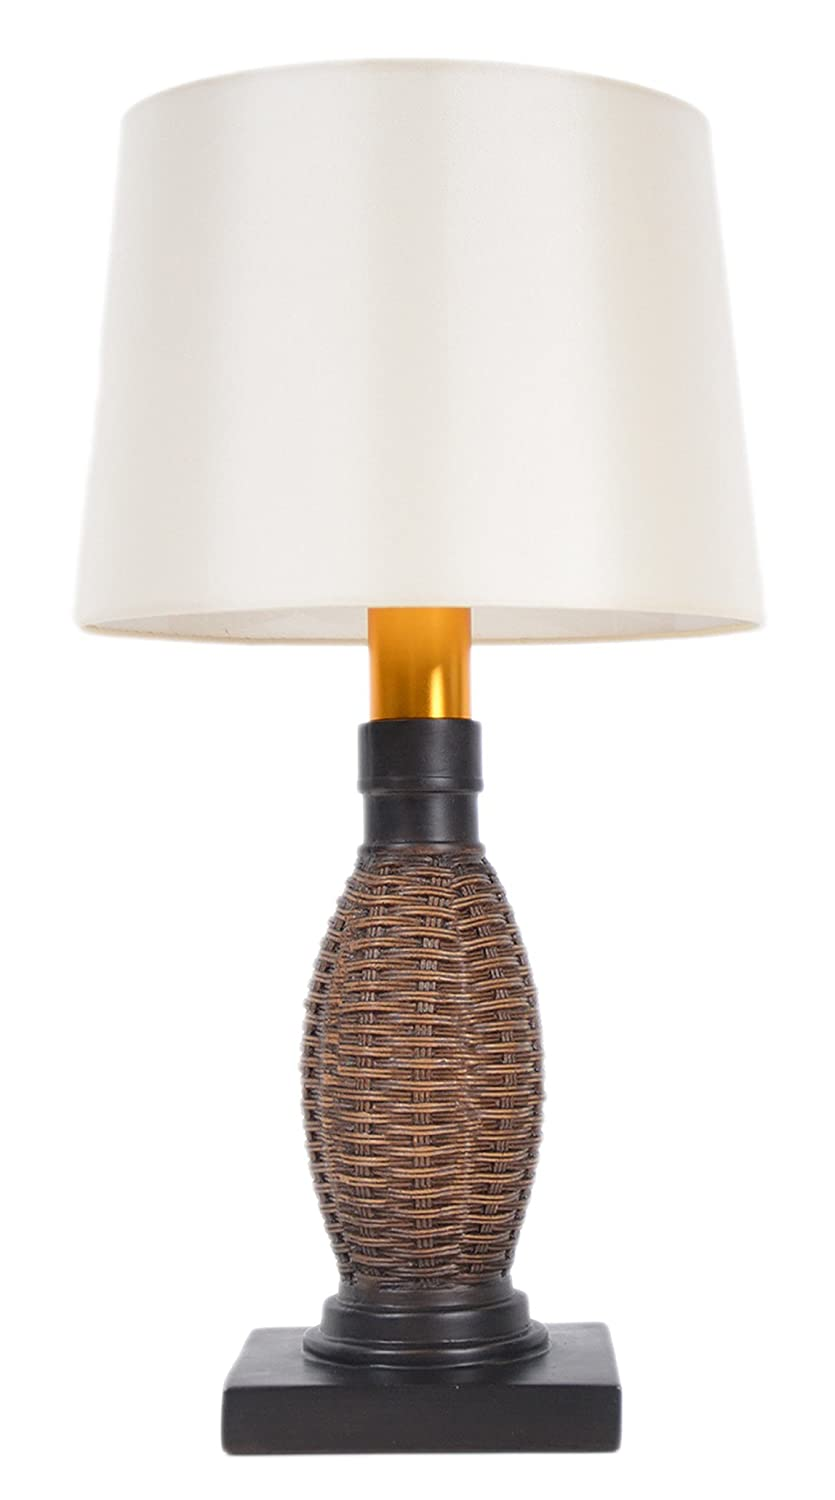 Amazon.com : Torch Light AB-OW1313B Wireless All Weather Wicker Table Lamp,  Antique Bronze : Patio, Lawn & Garden - Amazon.com : Torch Light AB-OW1313B Wireless All Weather Wicker